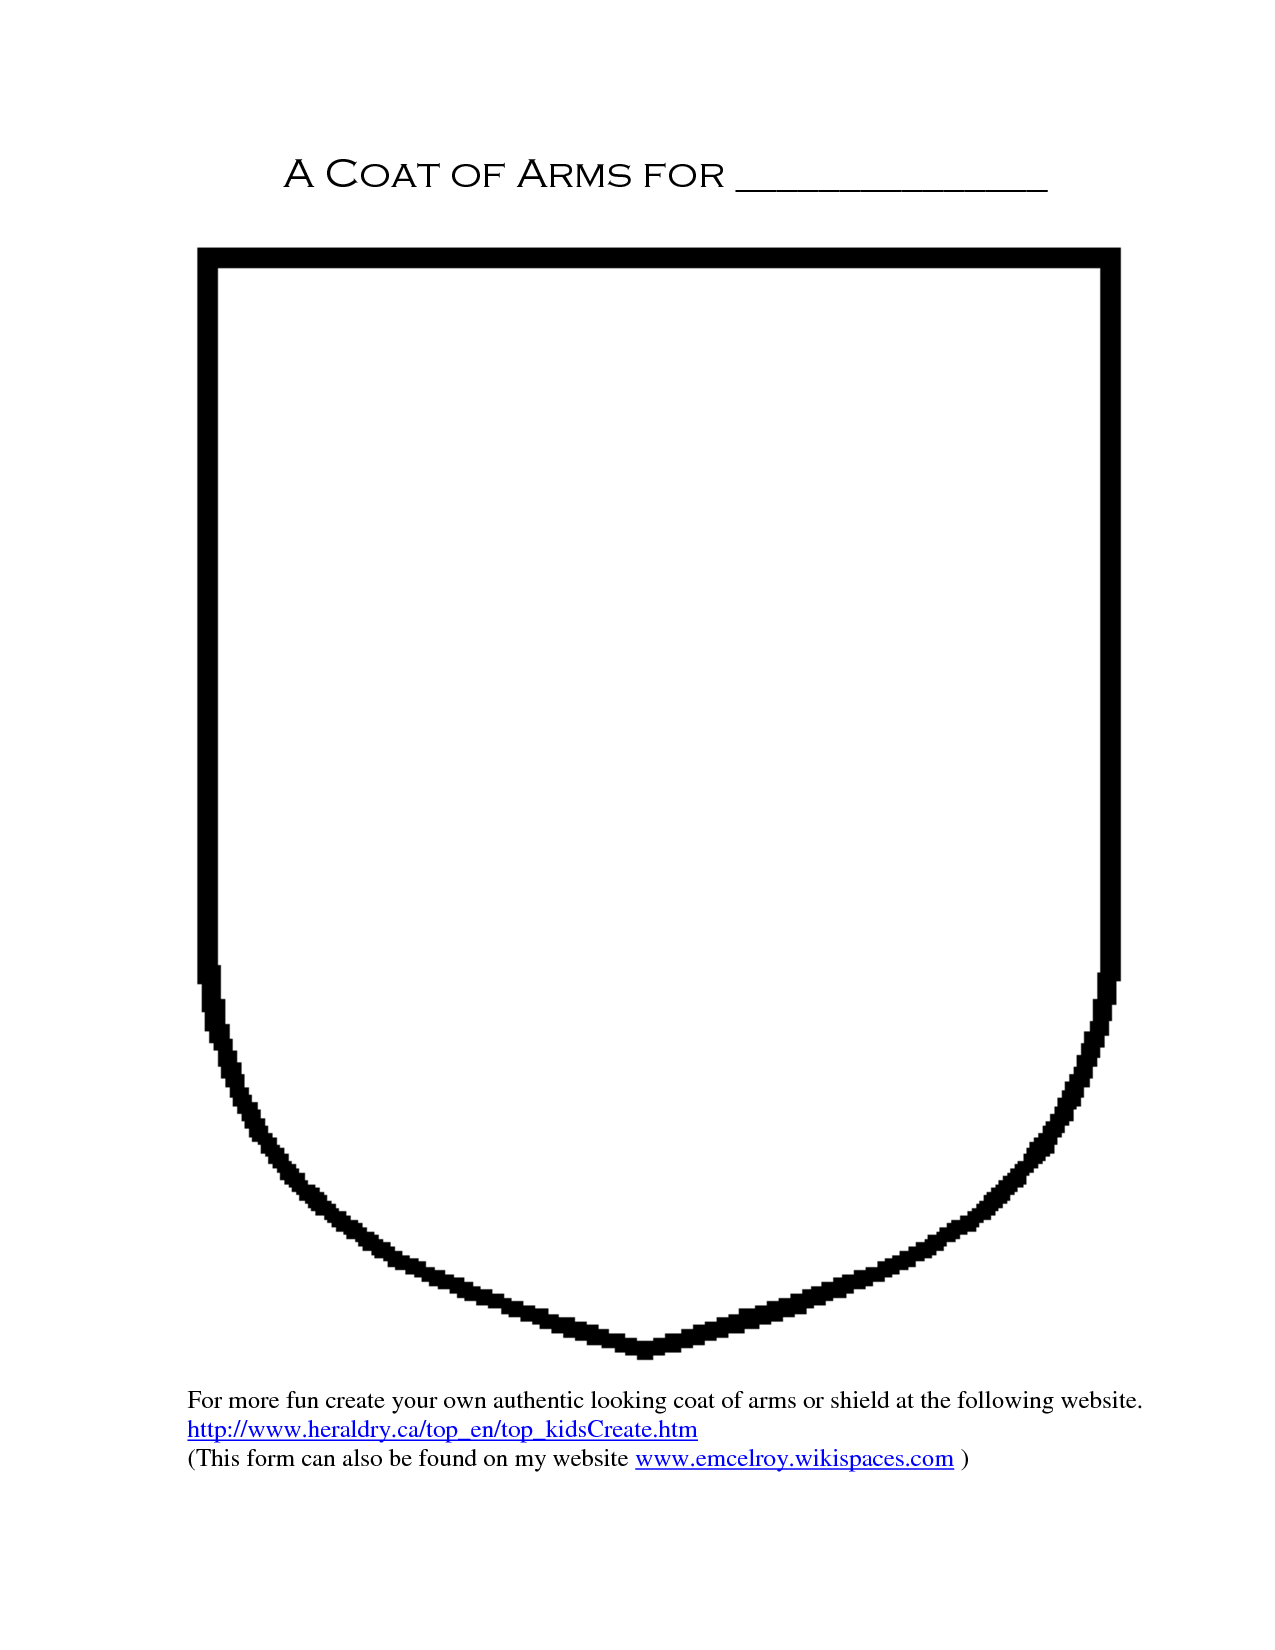 make your own coat of arms template - 10 shield design template images blank superhero shield